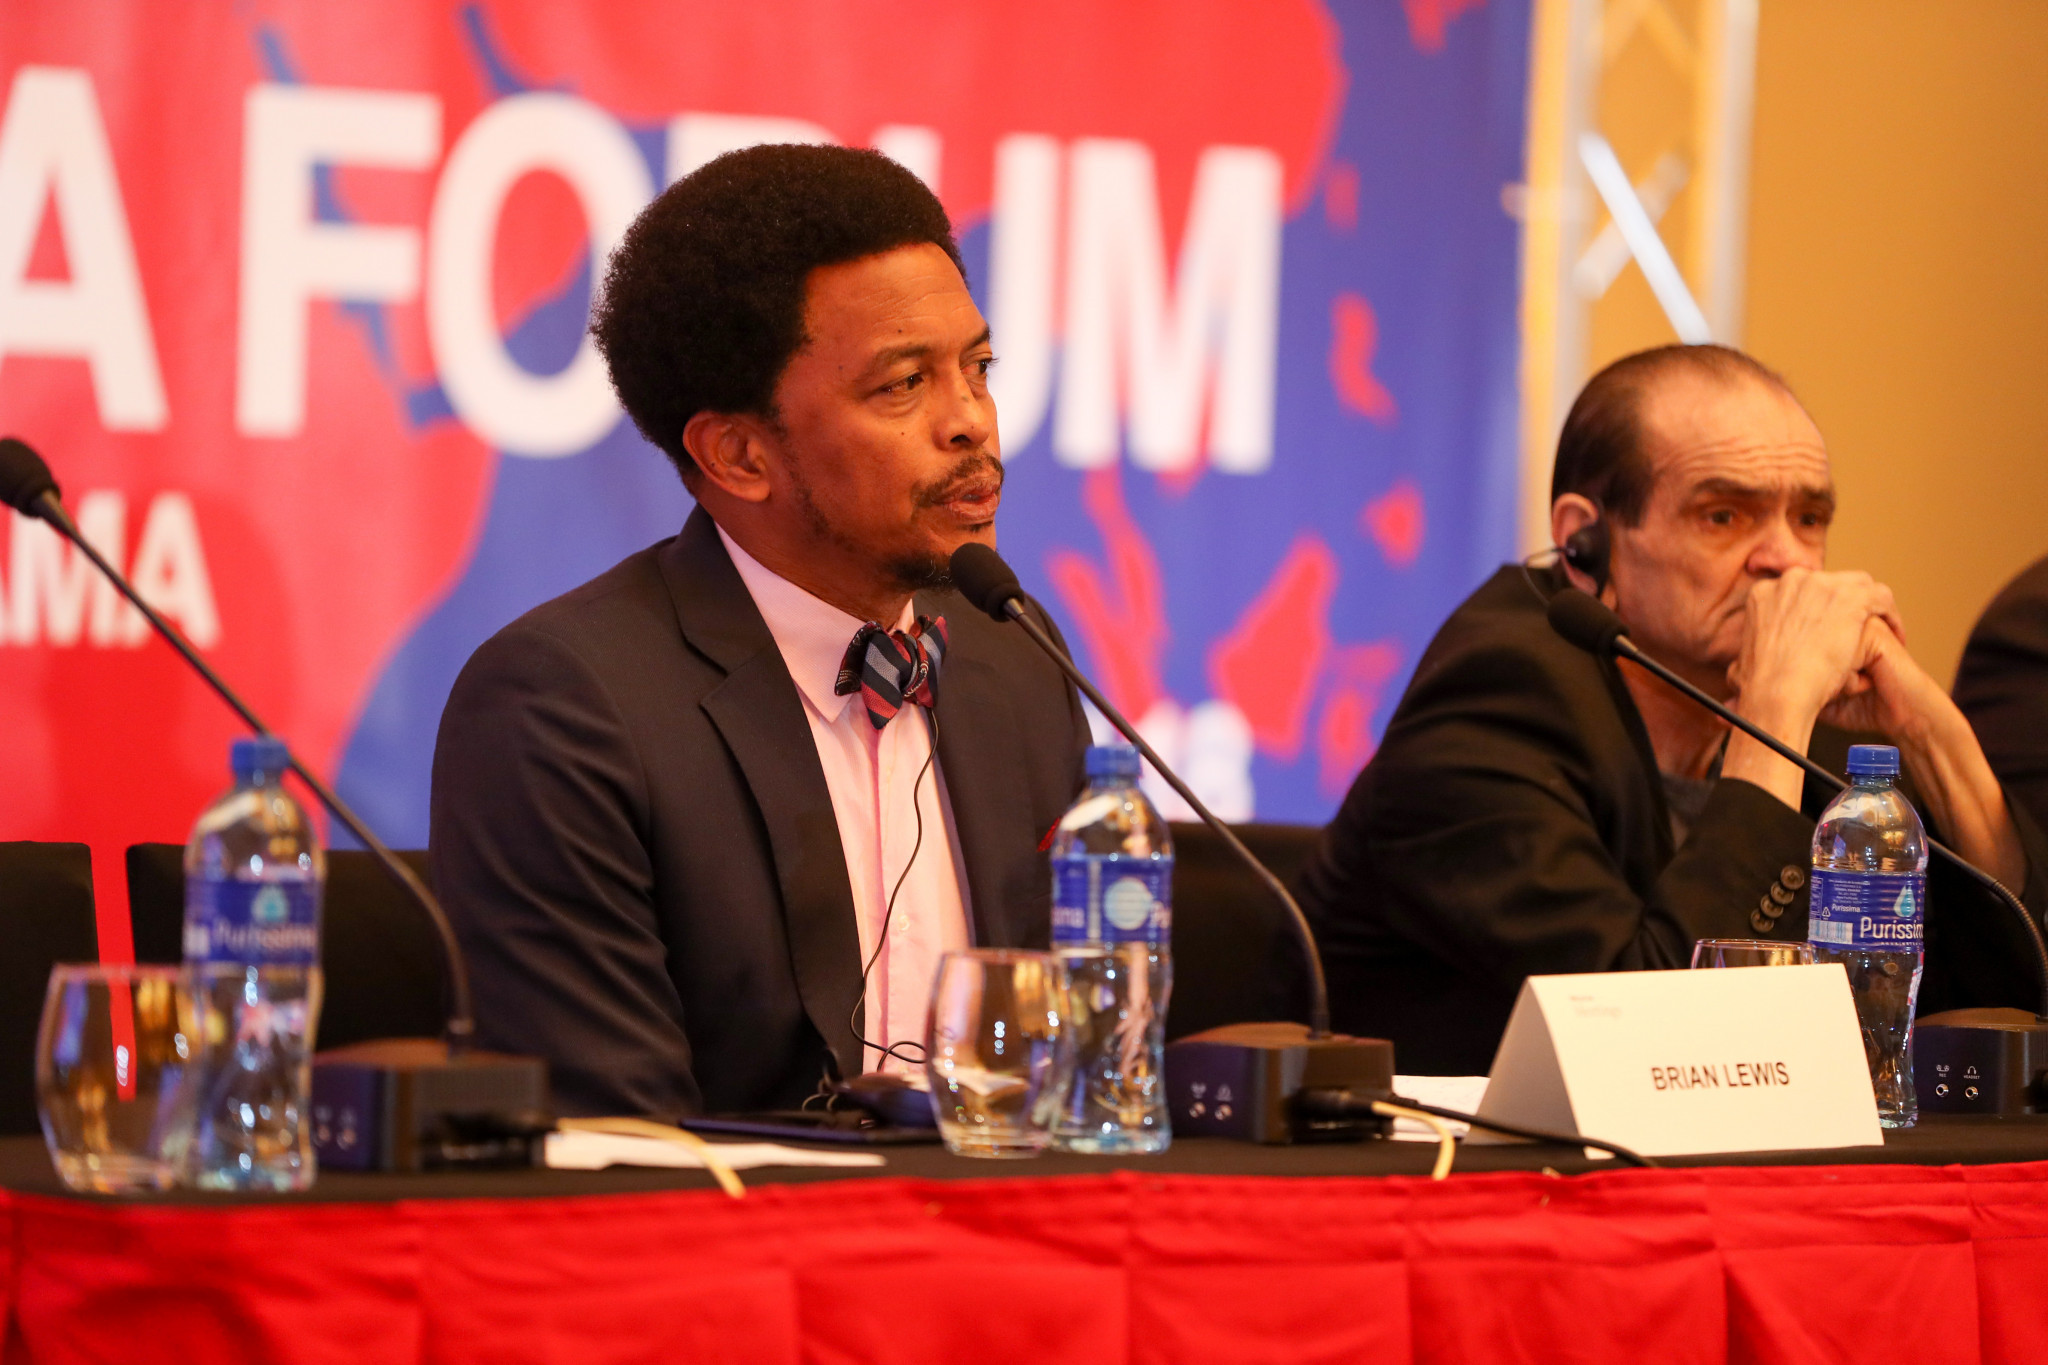 Trinidad and Tobago Olympic Committee President Brian Lewis advised National Federations on how to manage the renovation of Olympic boxing ©AIBA